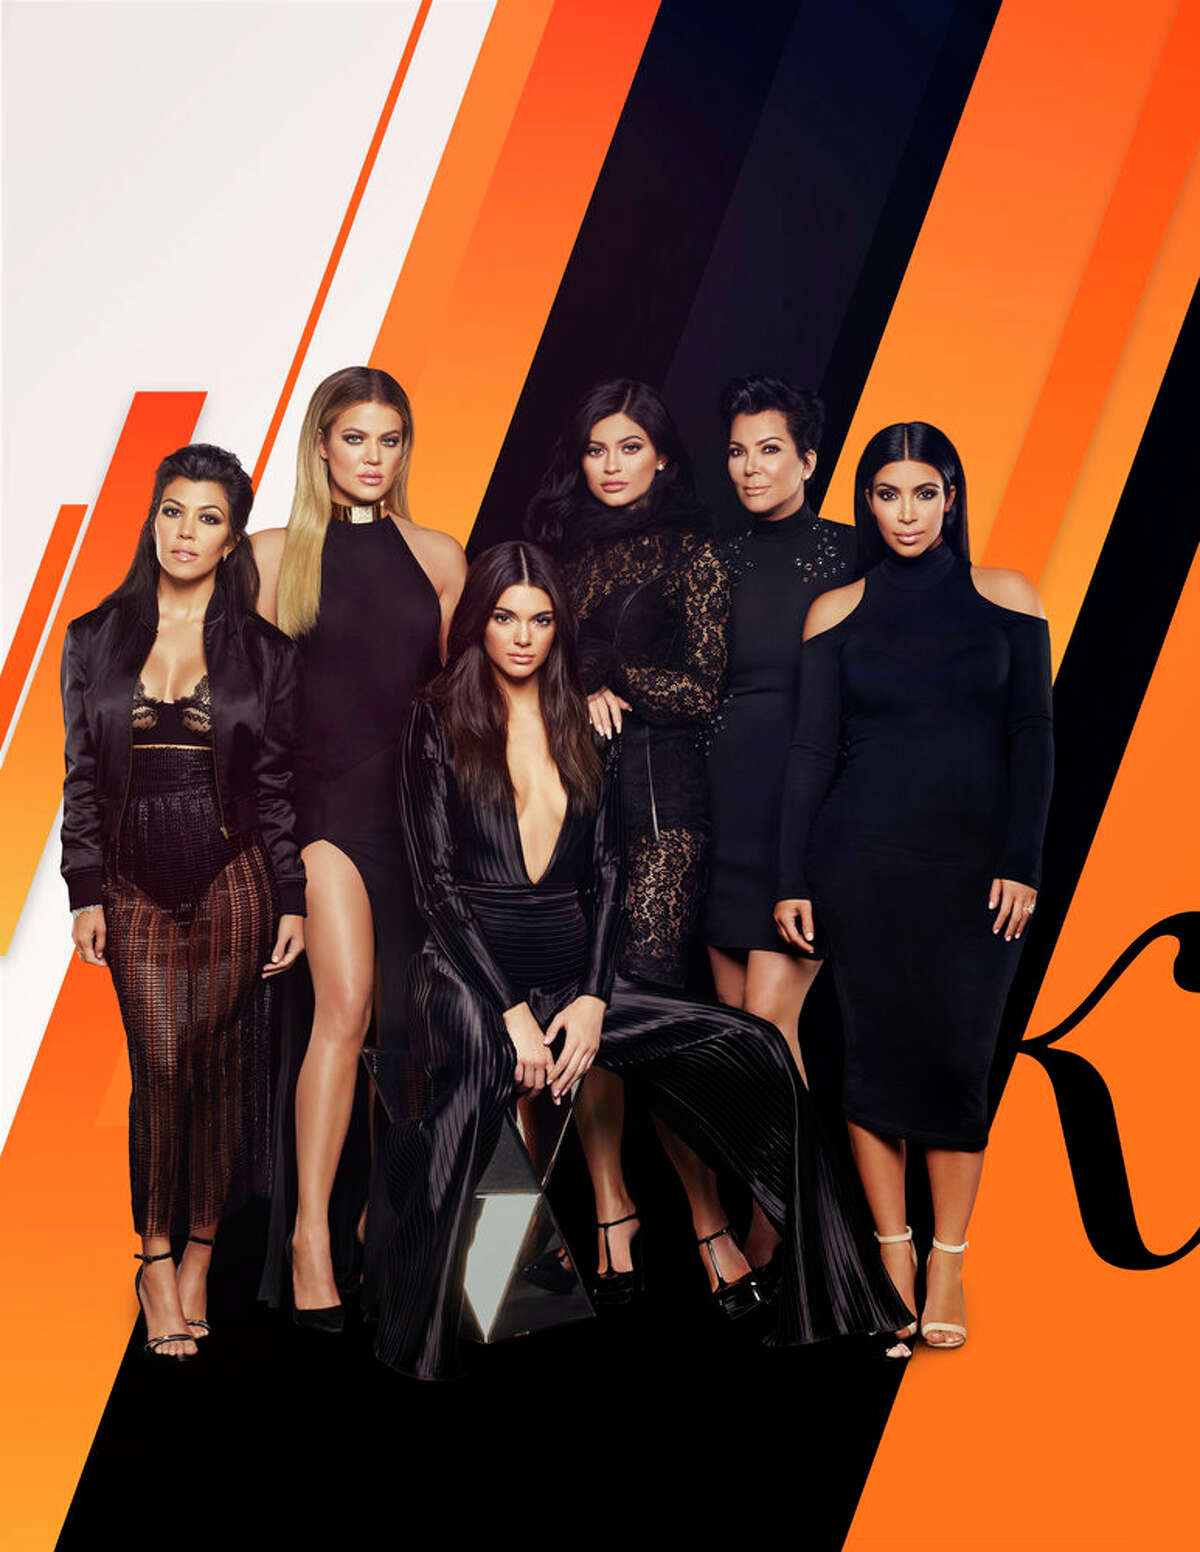 Keeping Up with the Kardashians : is back with even more Kardashian-ness beginning Sunday, May 1st at 8/9 p.m. on E!